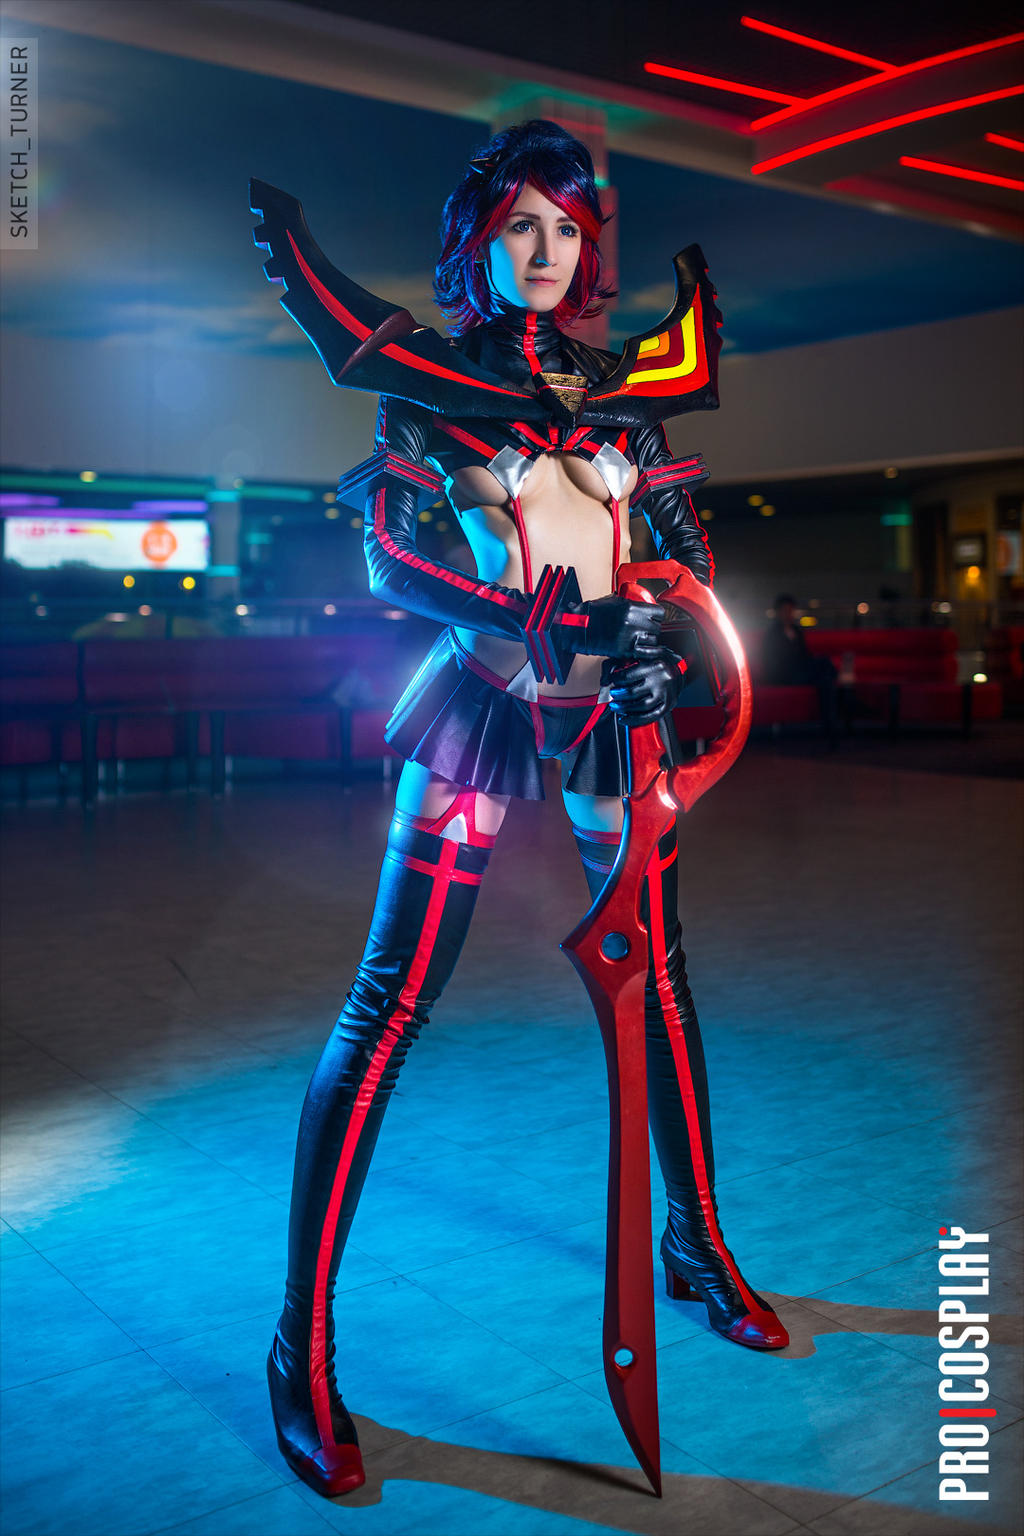 Kill la Kill Ryuko Matoi by Shinkarchuk